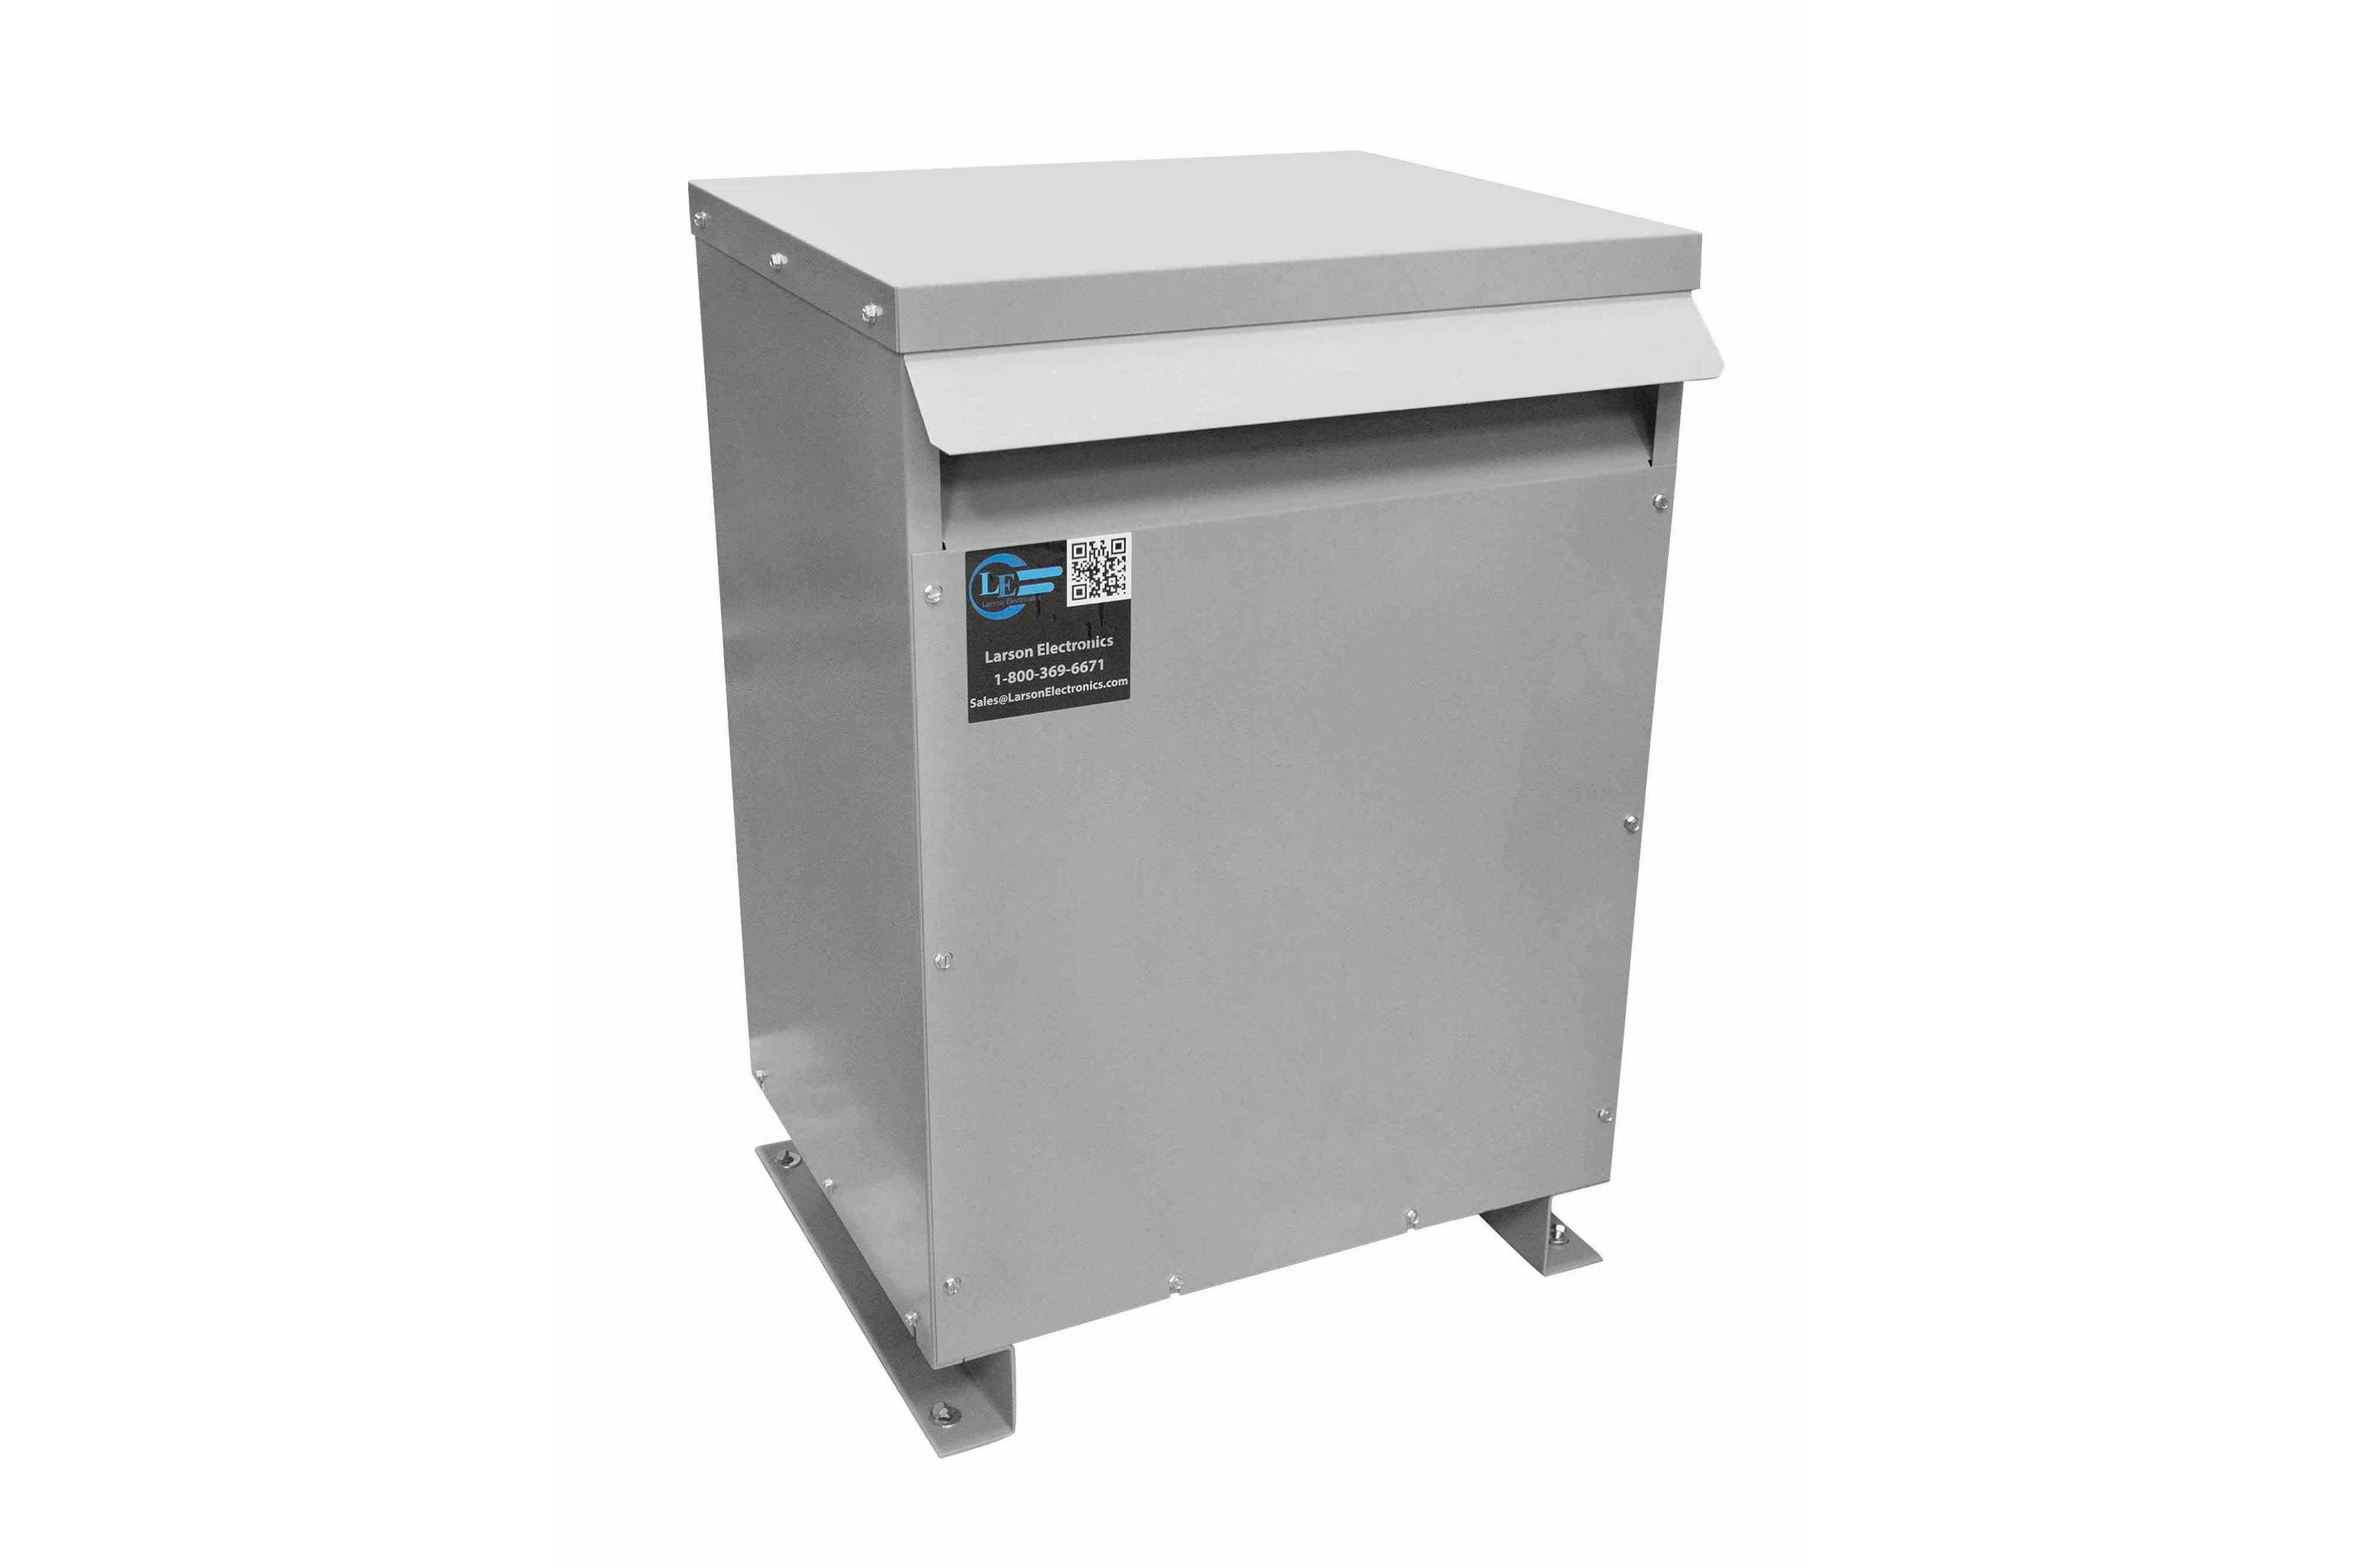 27 kVA 3PH Isolation Transformer, 415V Wye Primary, 208V Delta Secondary, N3R, Ventilated, 60 Hz